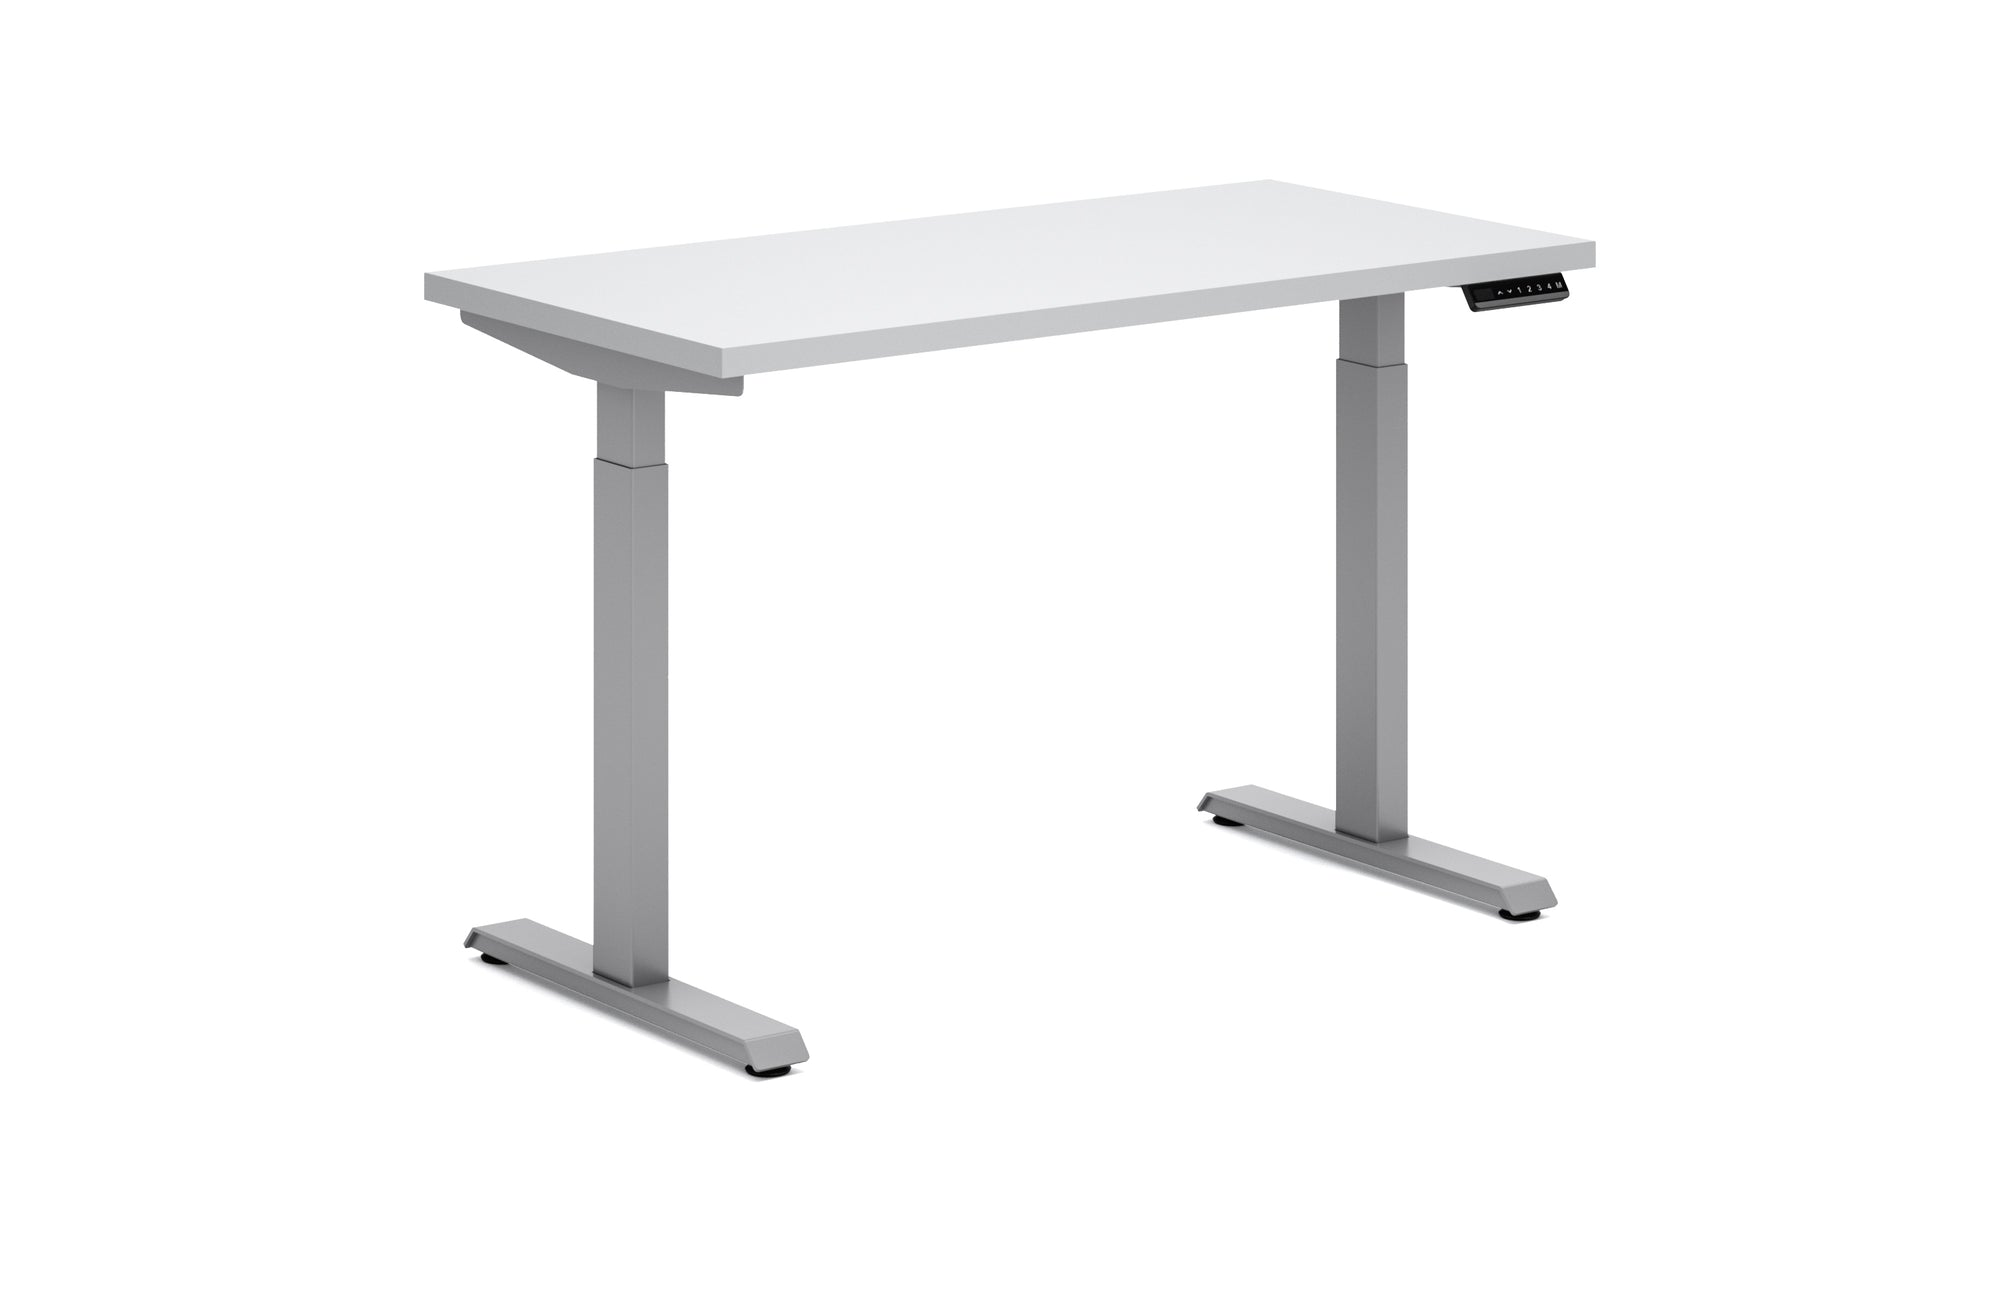 ALTITUDE A6 | height-adjustable desk